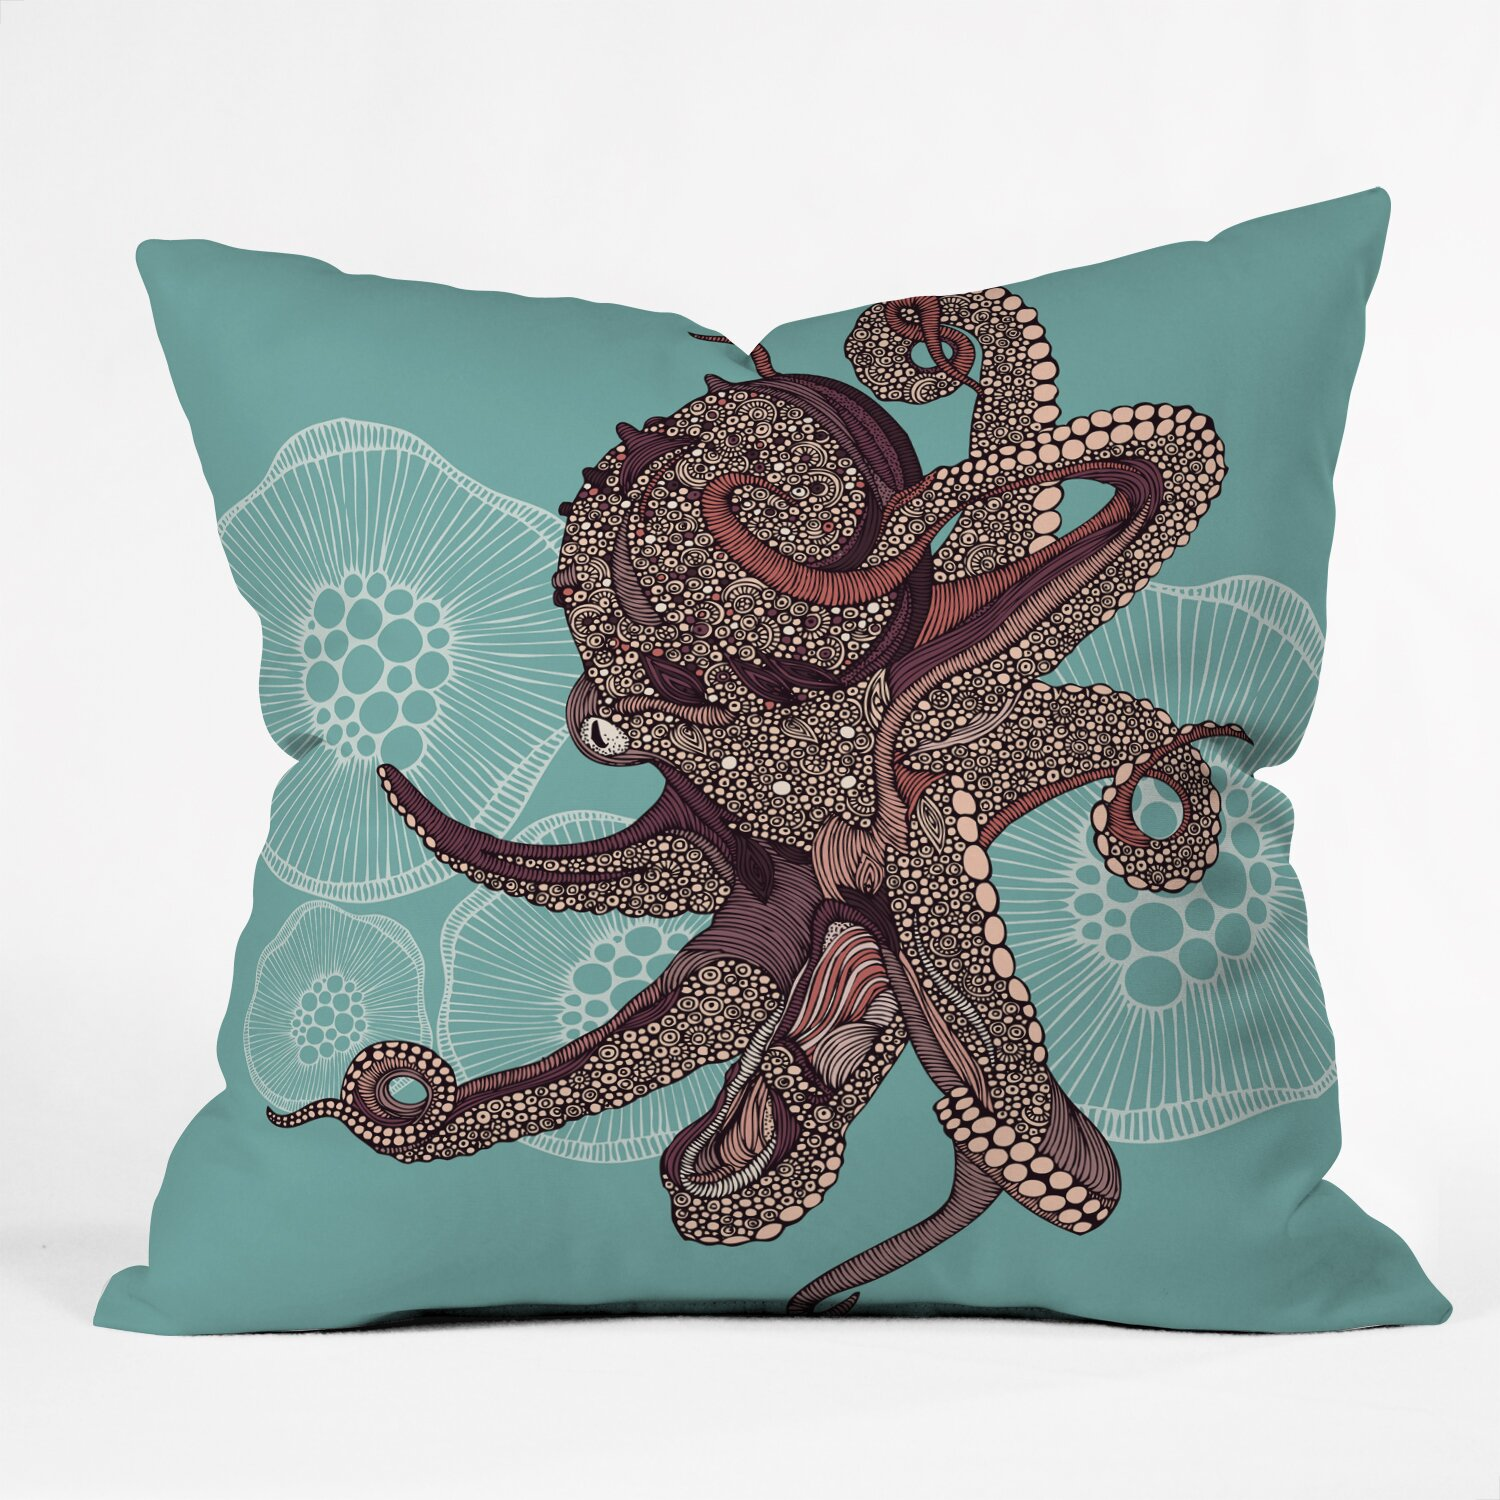 DENY Designs Valentina Ramos Octopus Bloom Throw Pillow & Reviews Wayfair